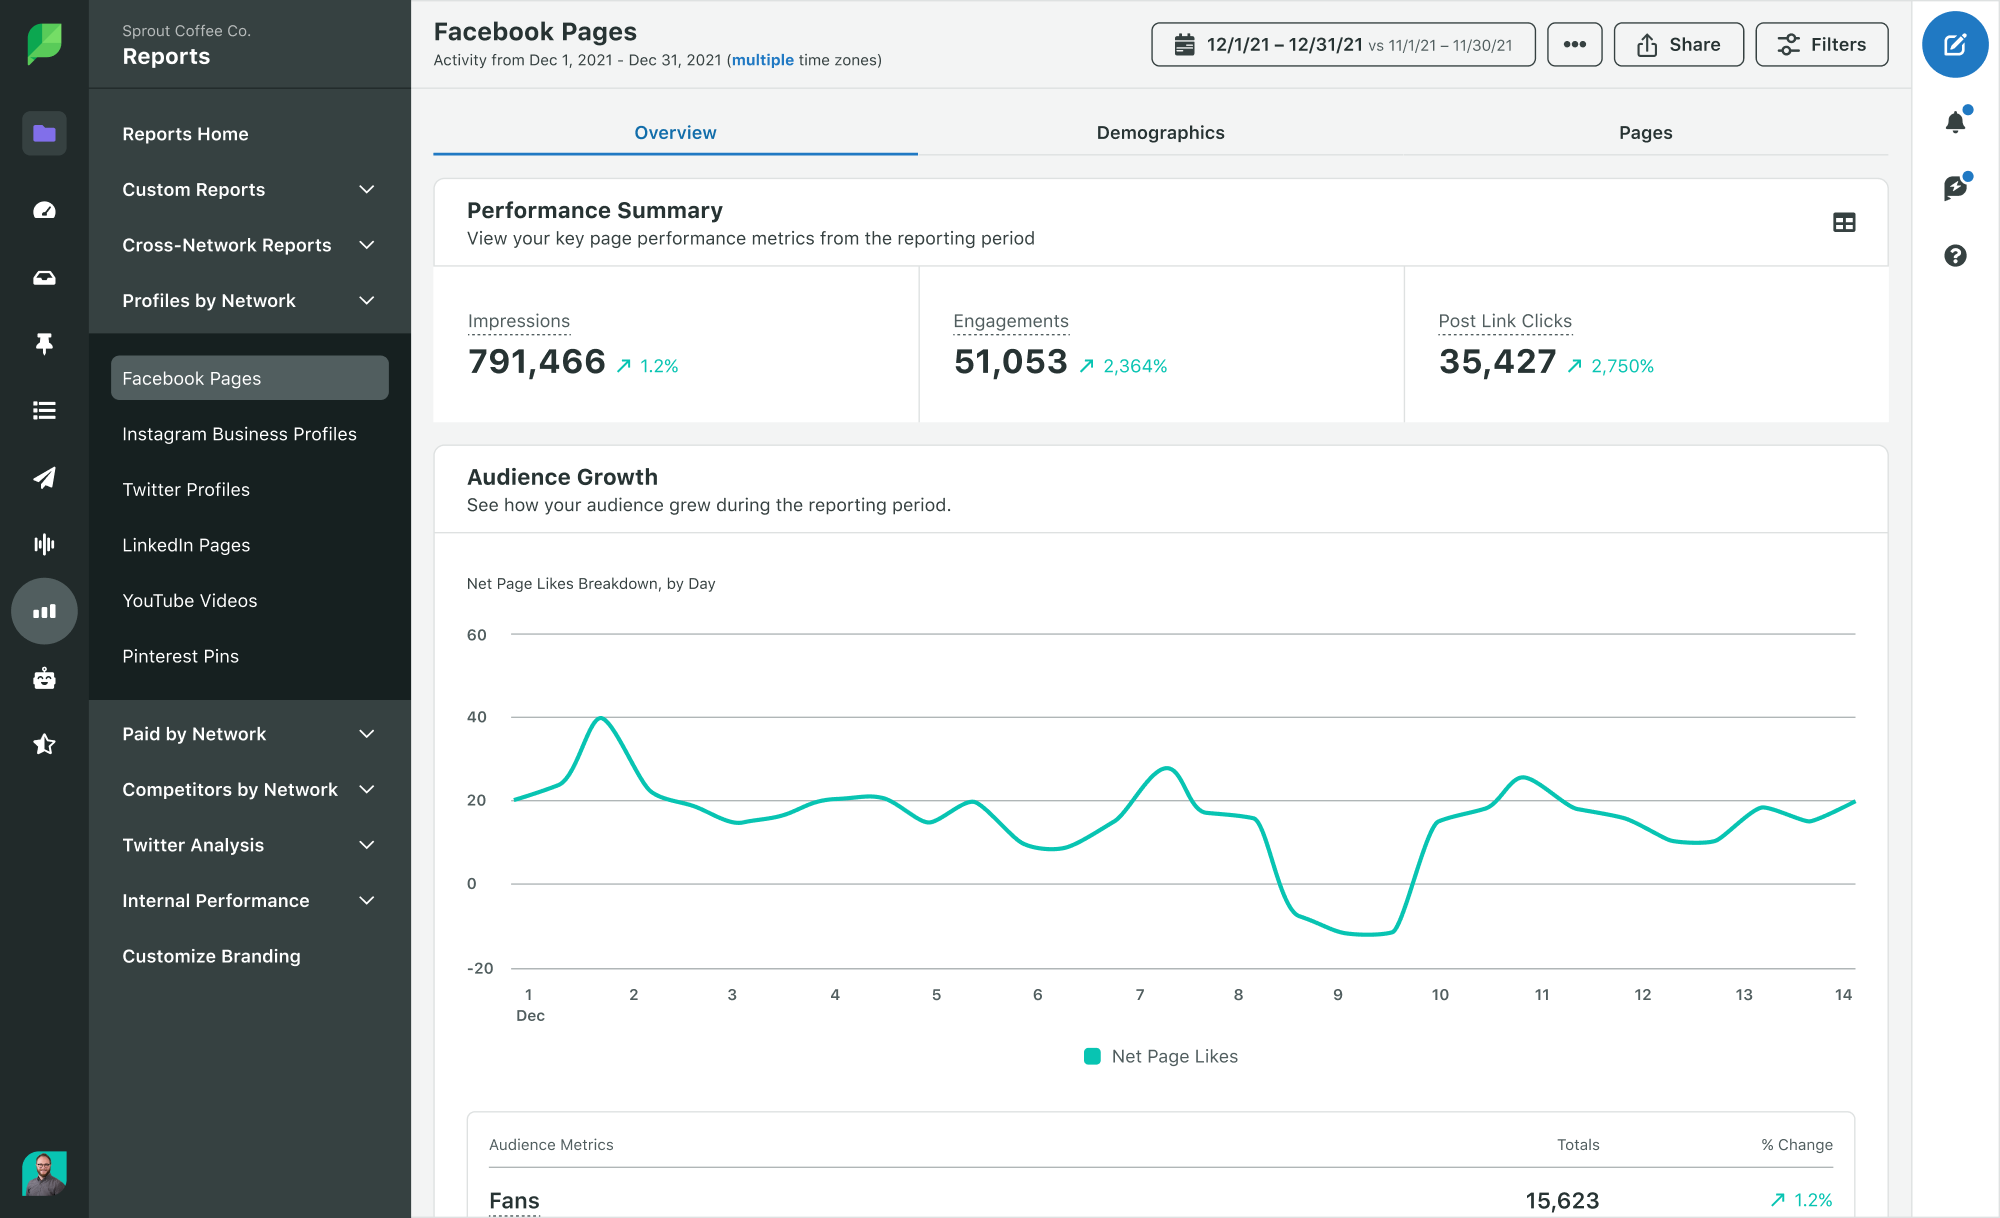 Sprout Social Facebook Business Page analytics overview